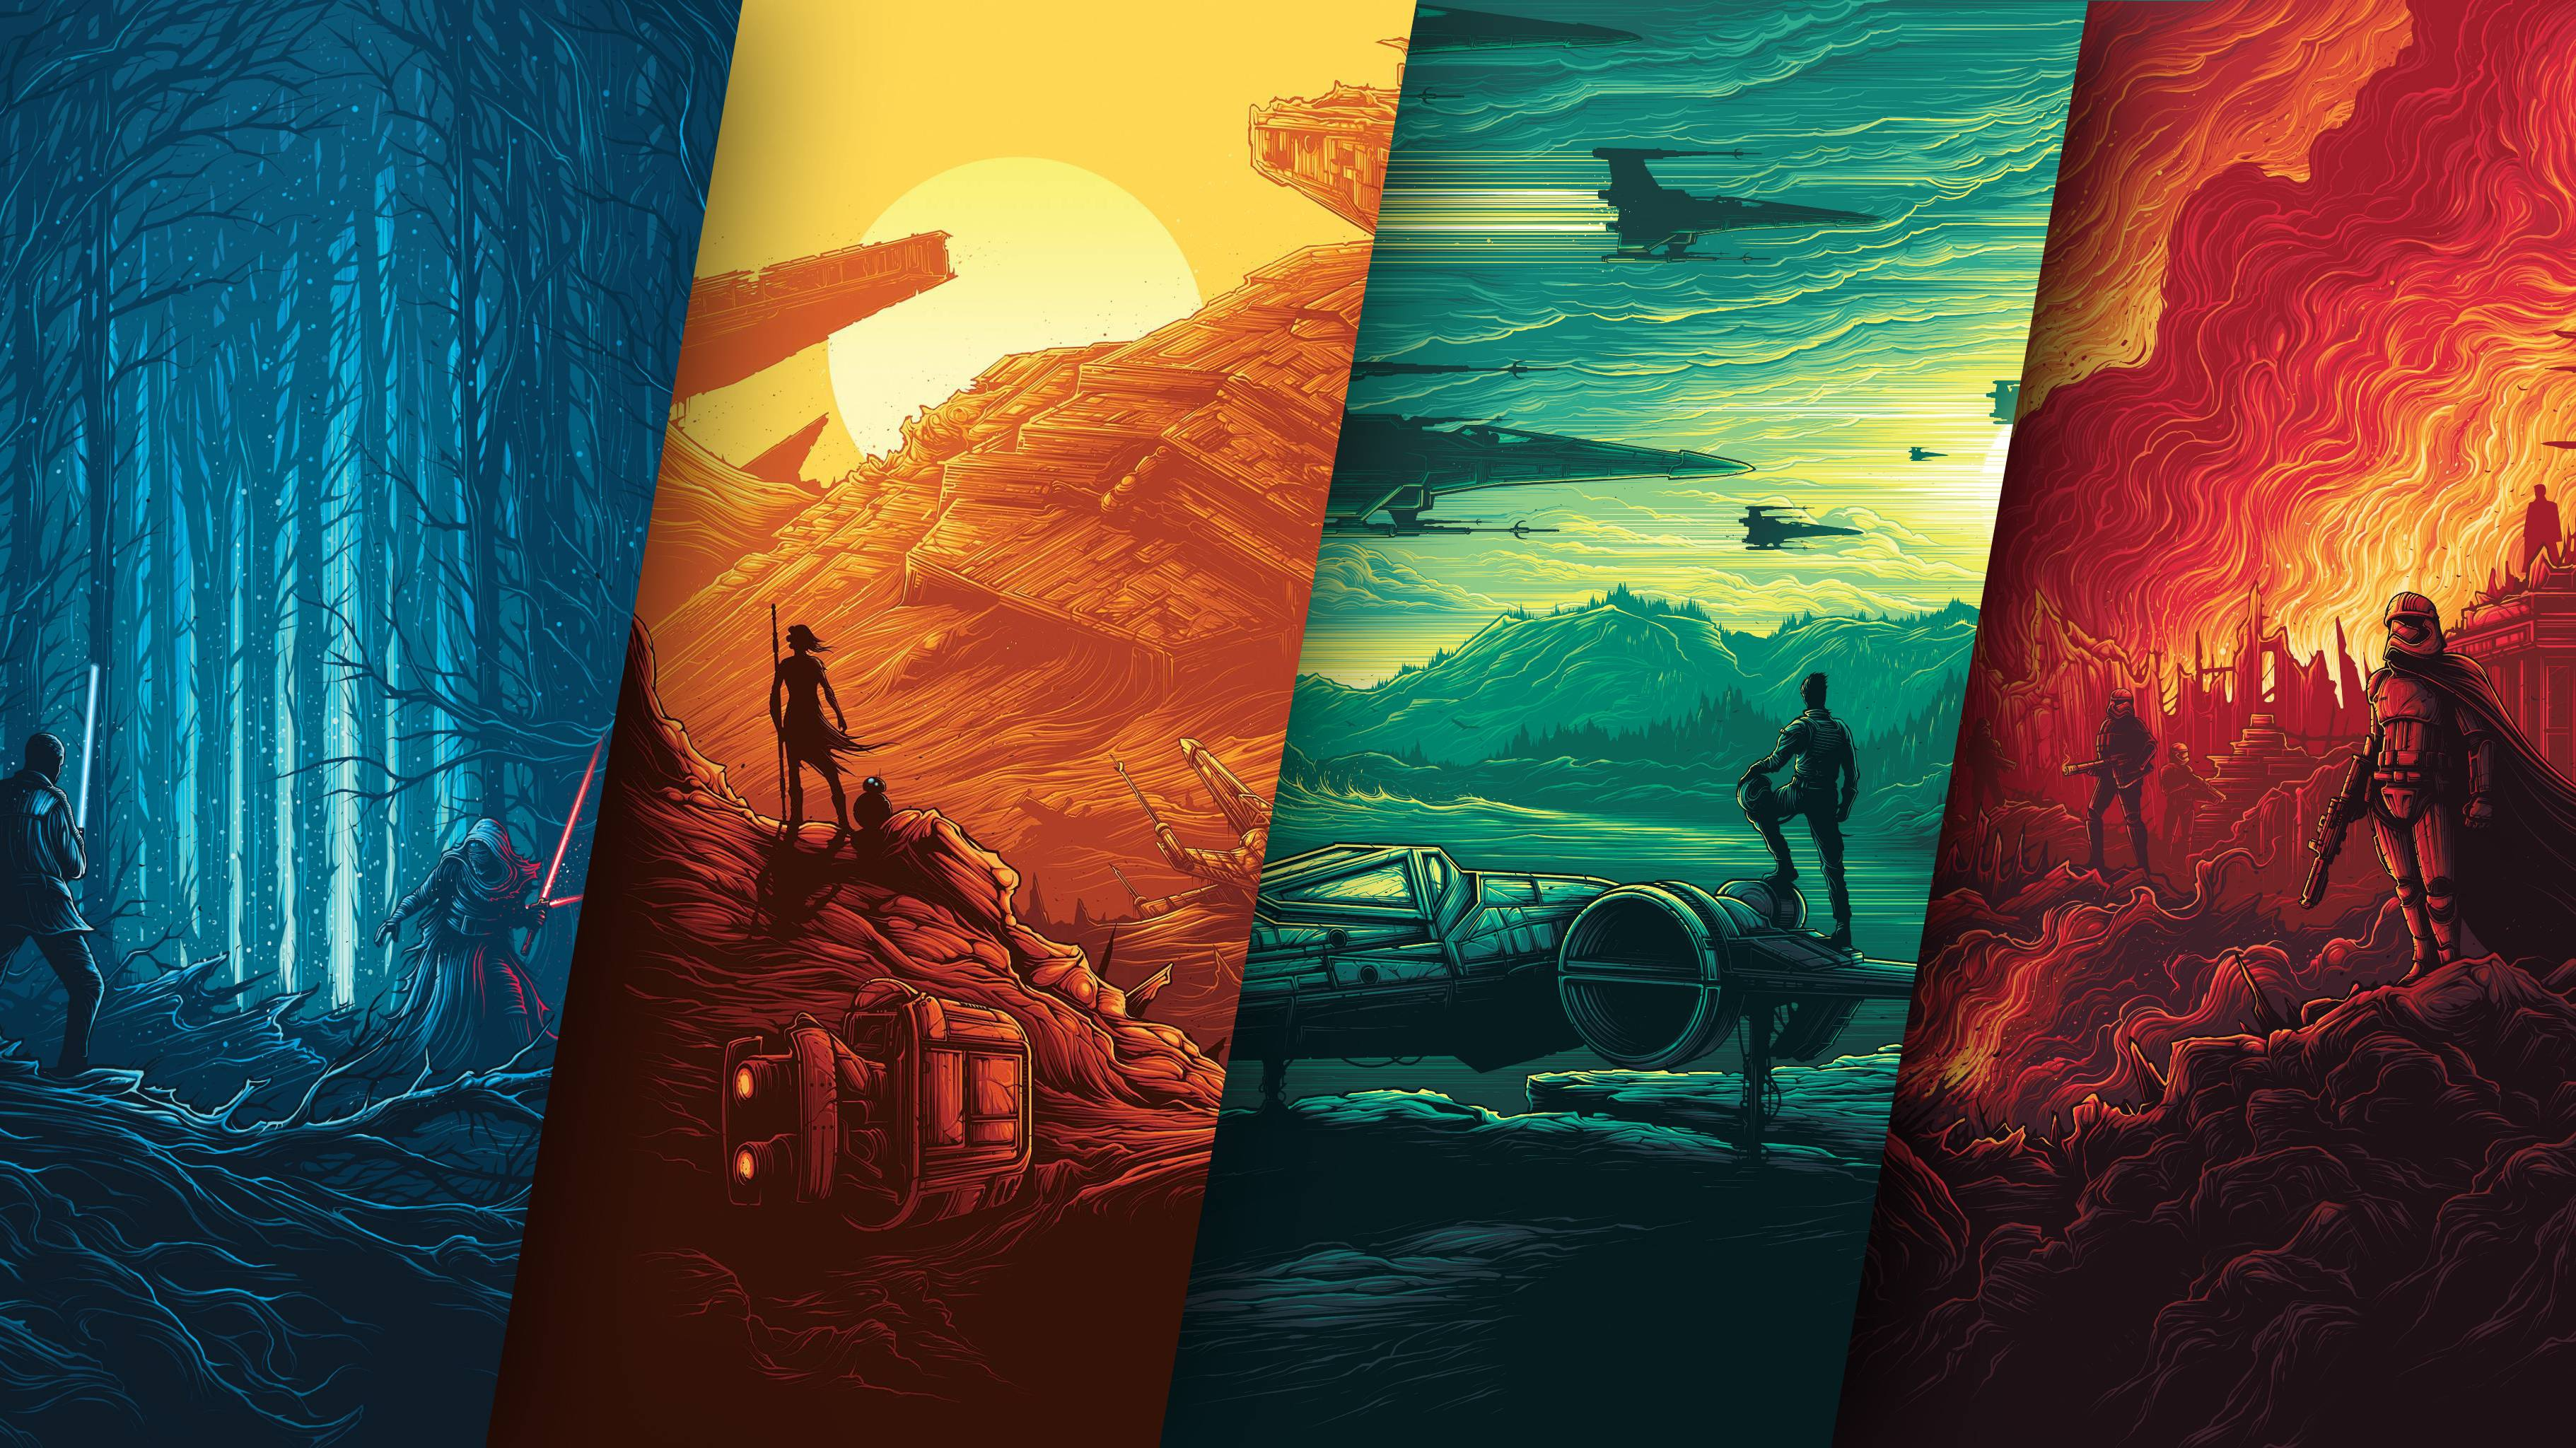 Star Wars Poster 4k, HD Movies, 4k Wallpapers, Images ...